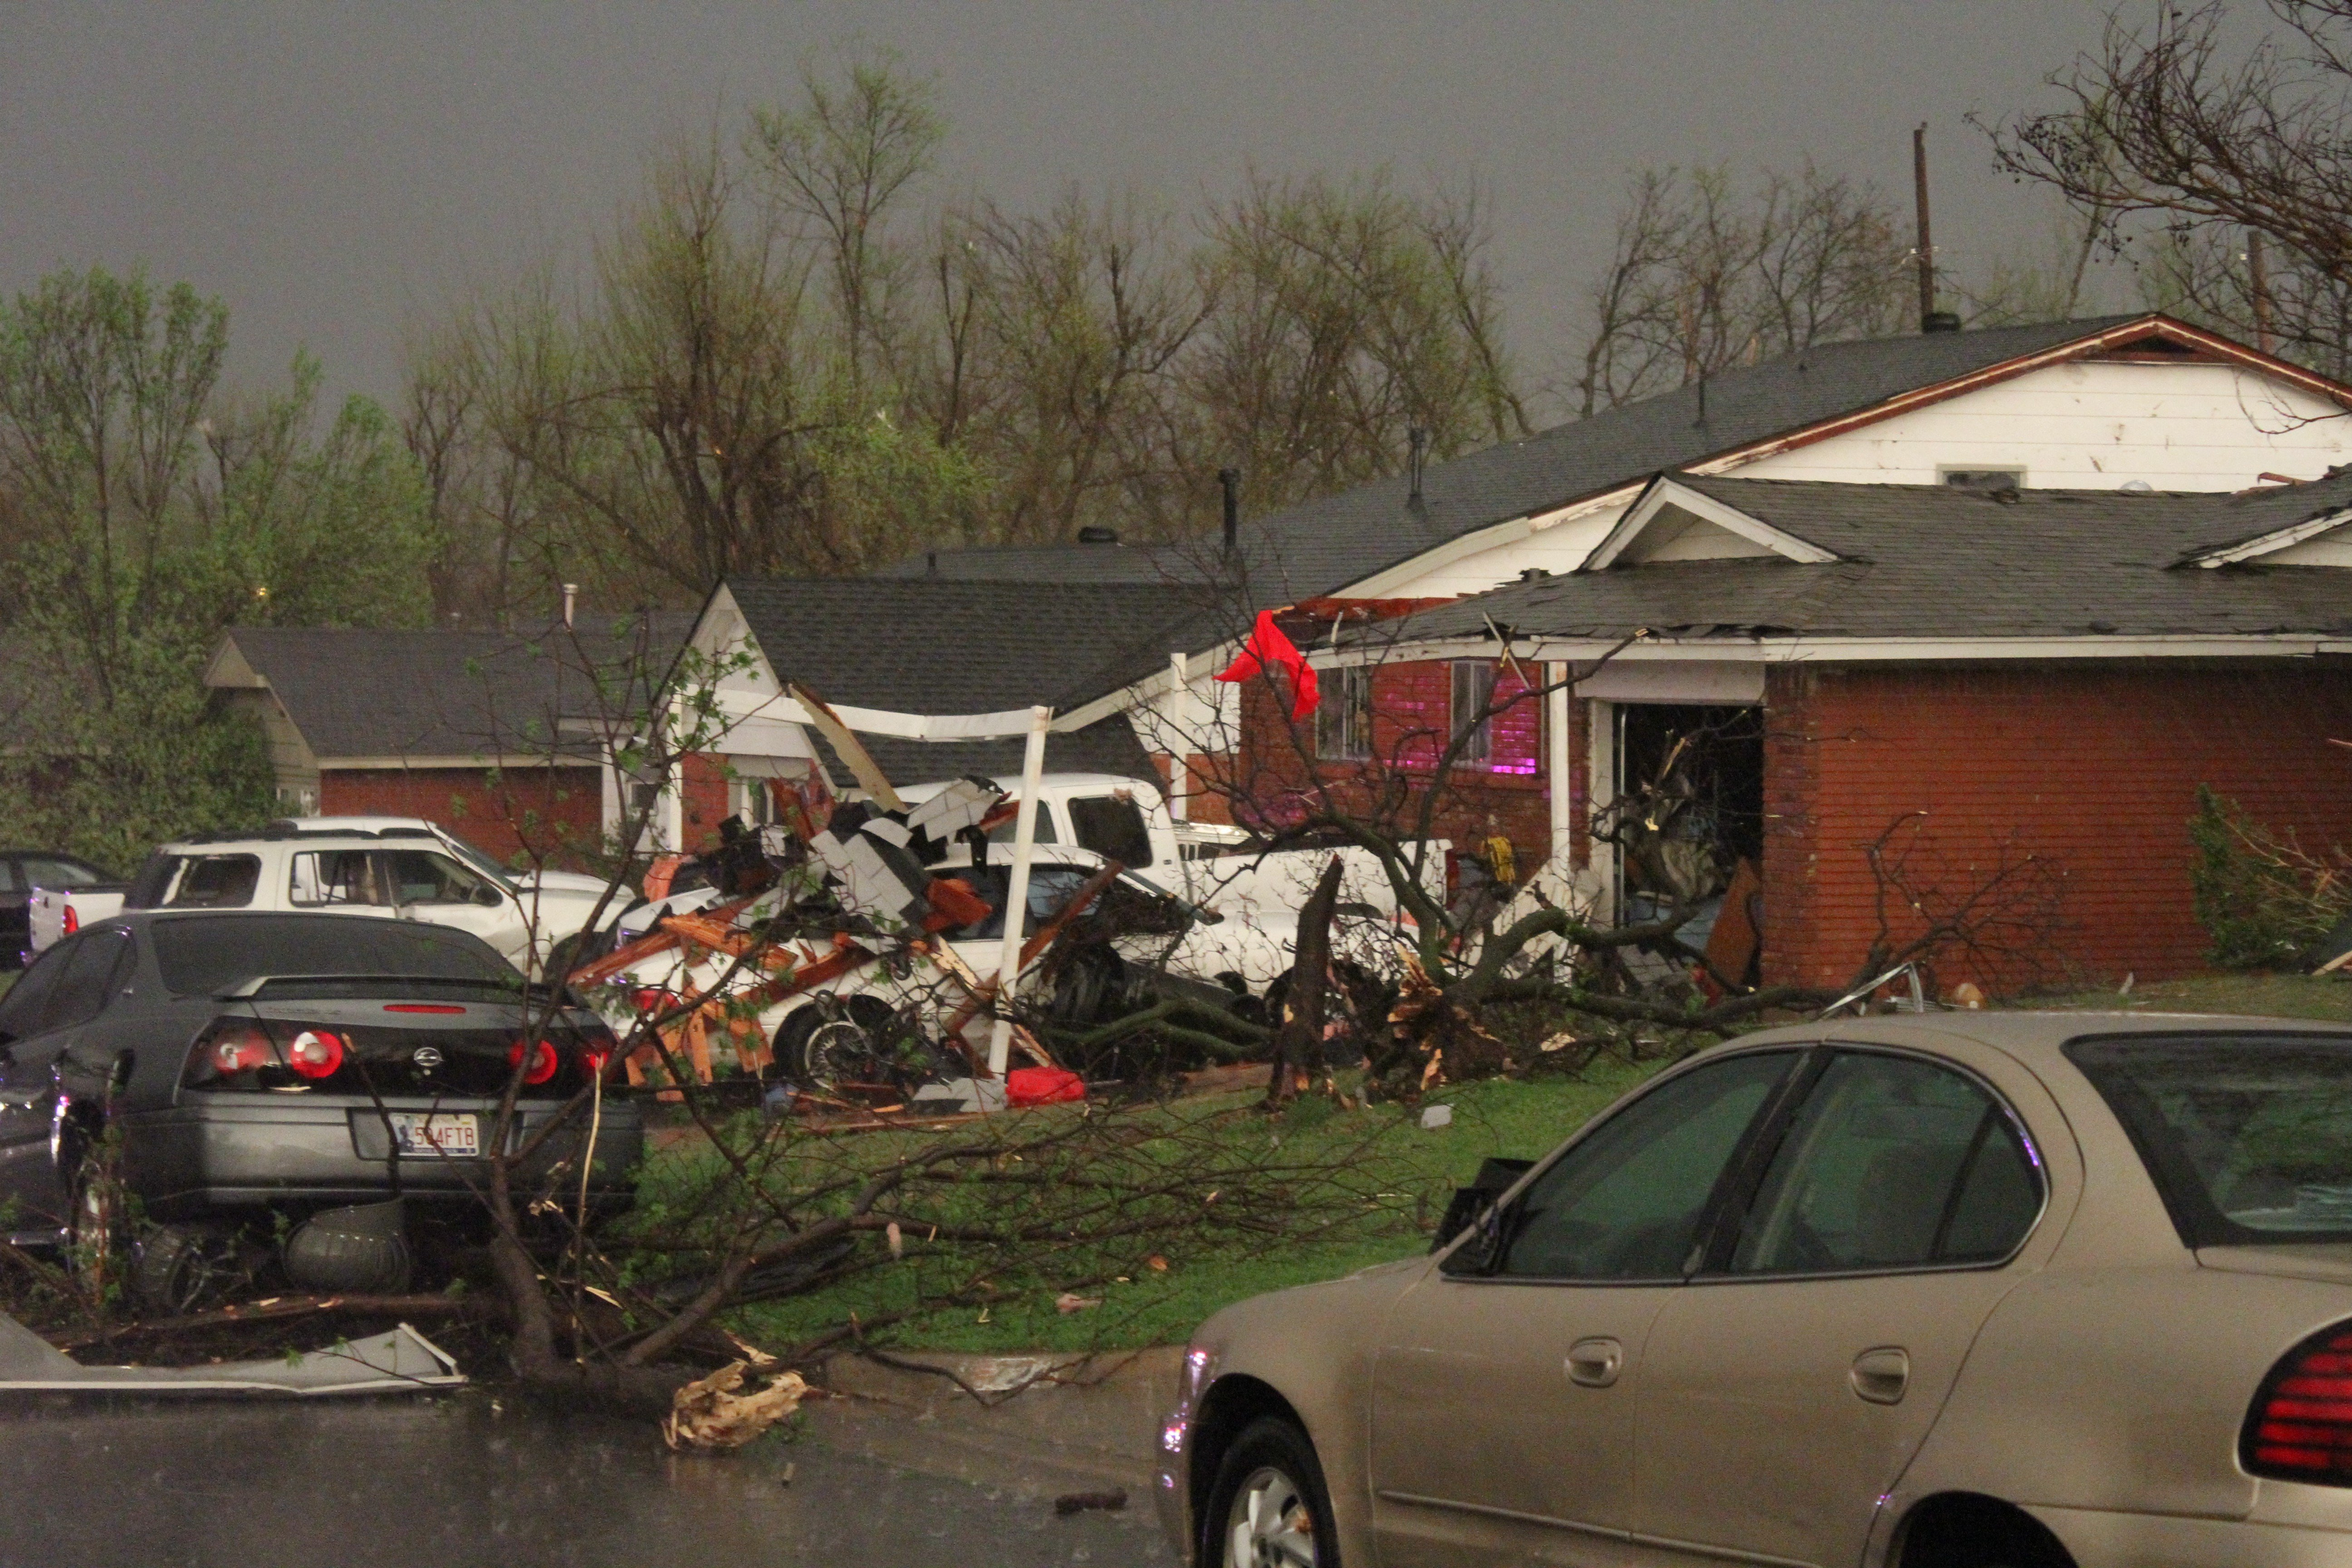 Cars, homes, downed trees and buildings damaged by a storm that spawned a tornado in Moore, Okla. on March 25, 2015.